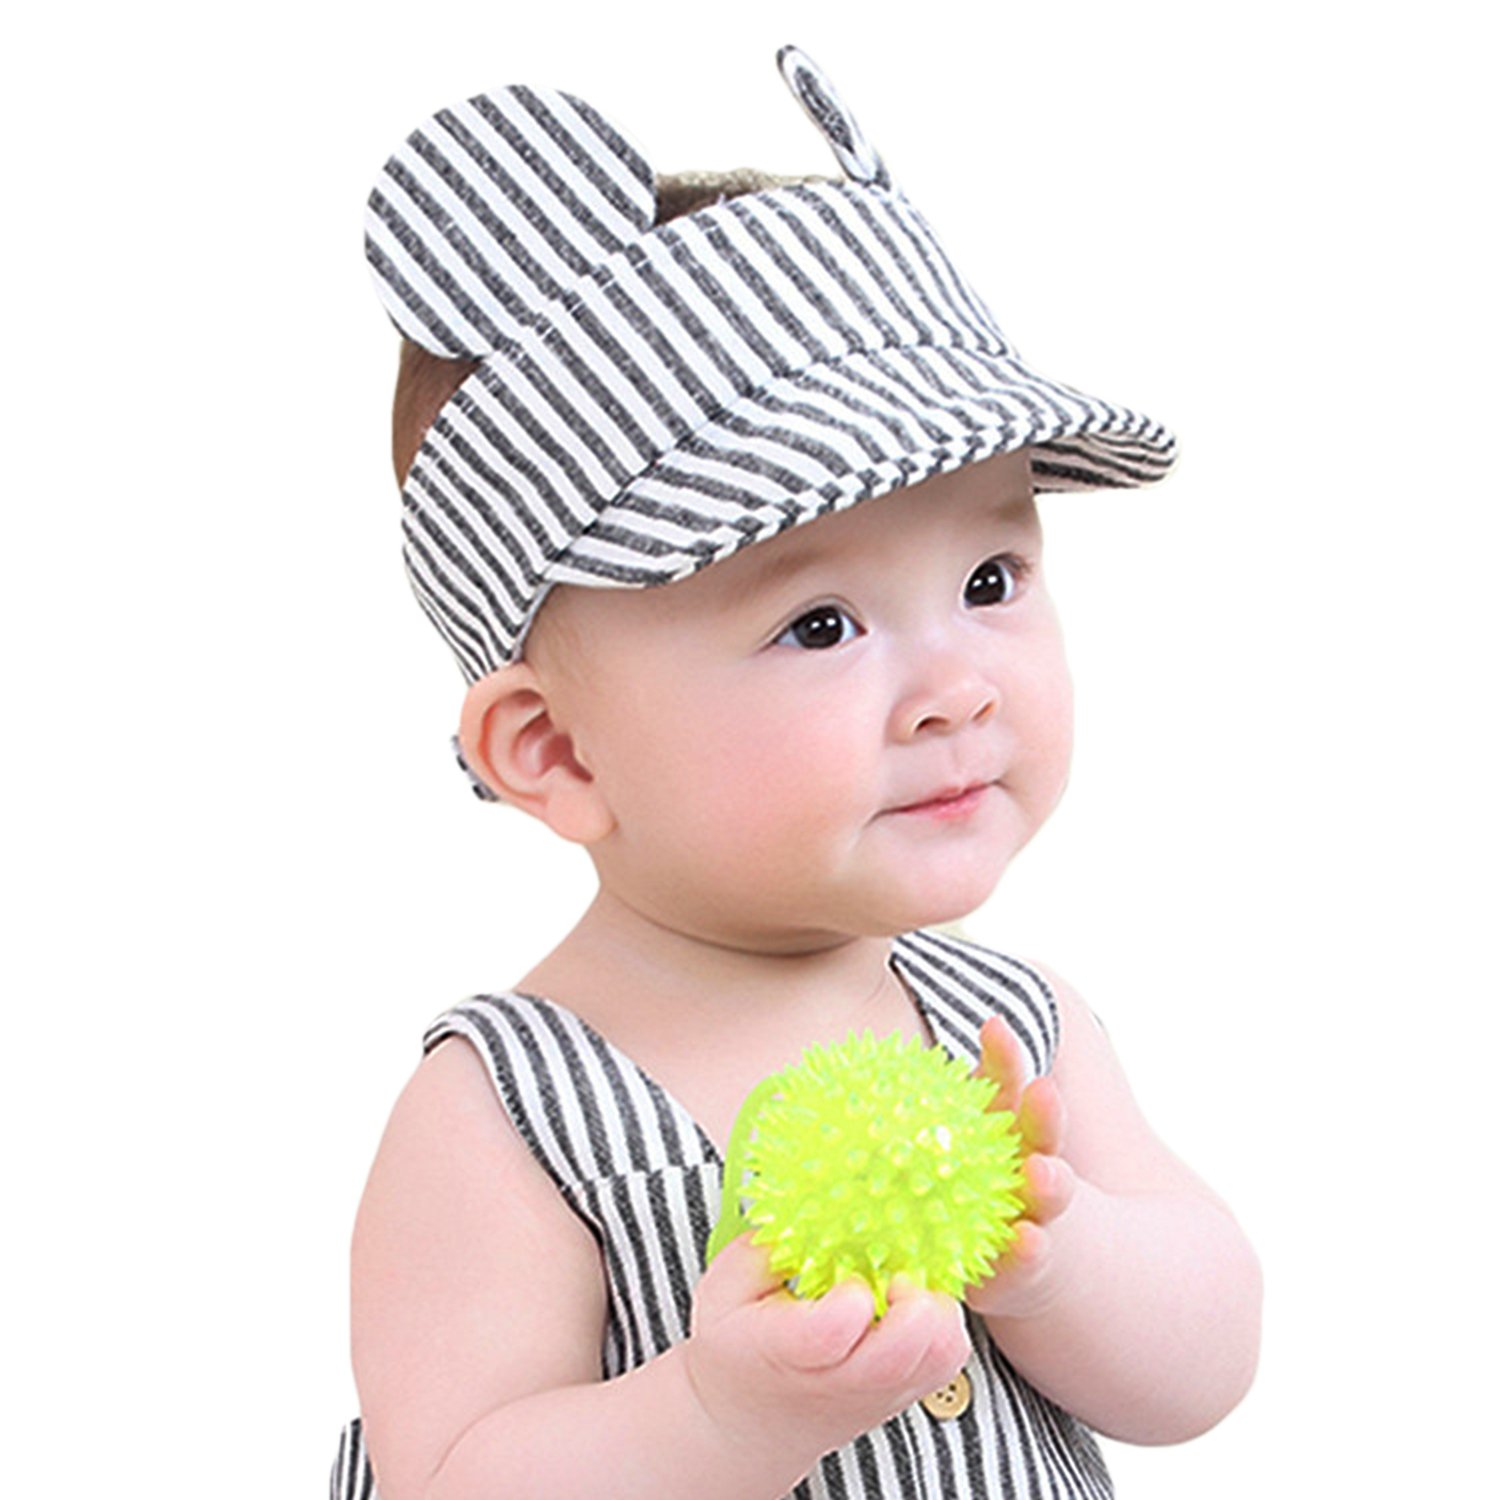 513f9e140bee Baby Summer Sun Hat Cute Casual Peaked Cap Adjustable Striped ...